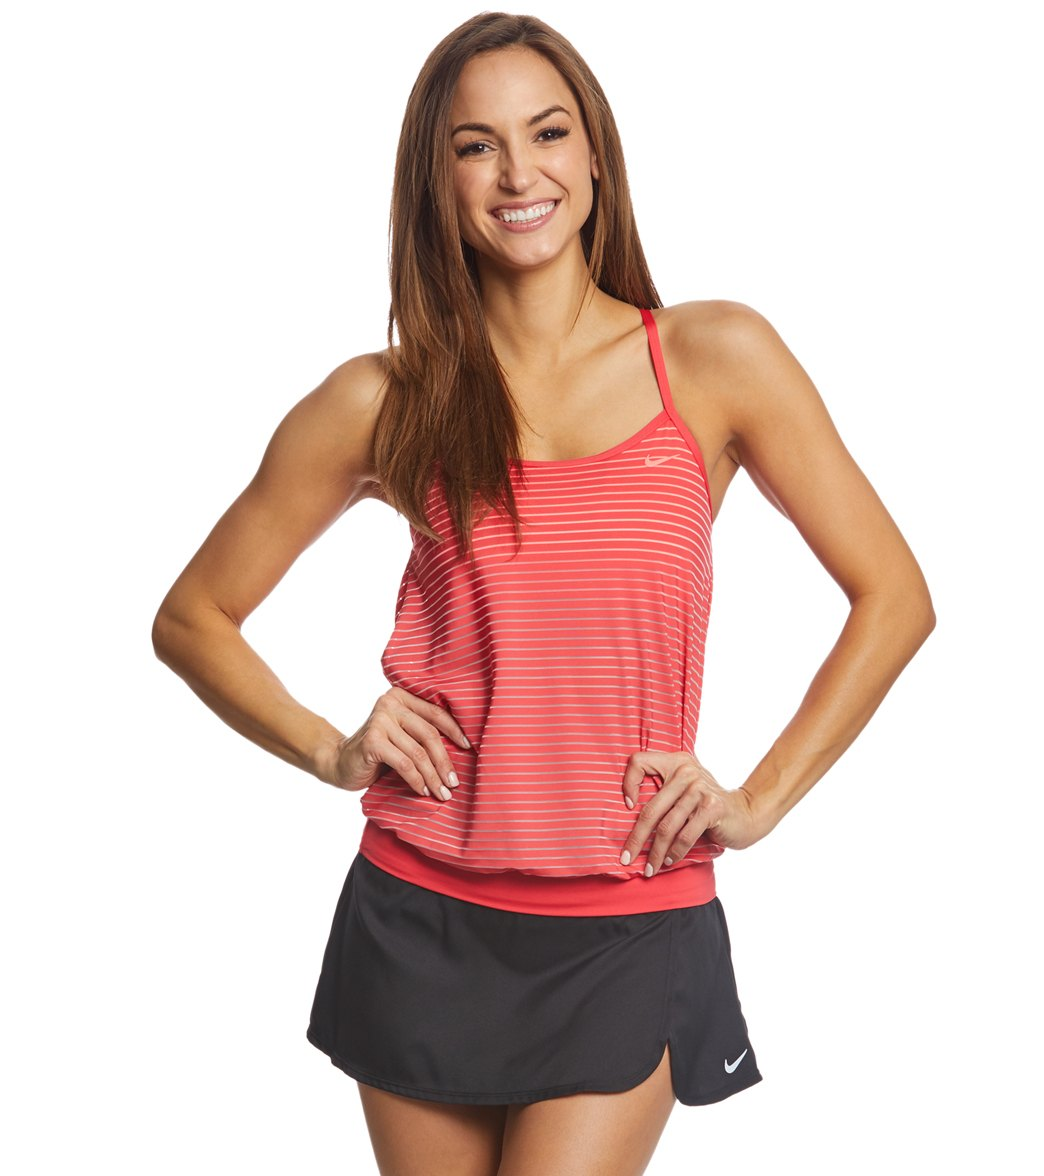 61bb2061273 Nike Women's Stripe Layered Tankini Top